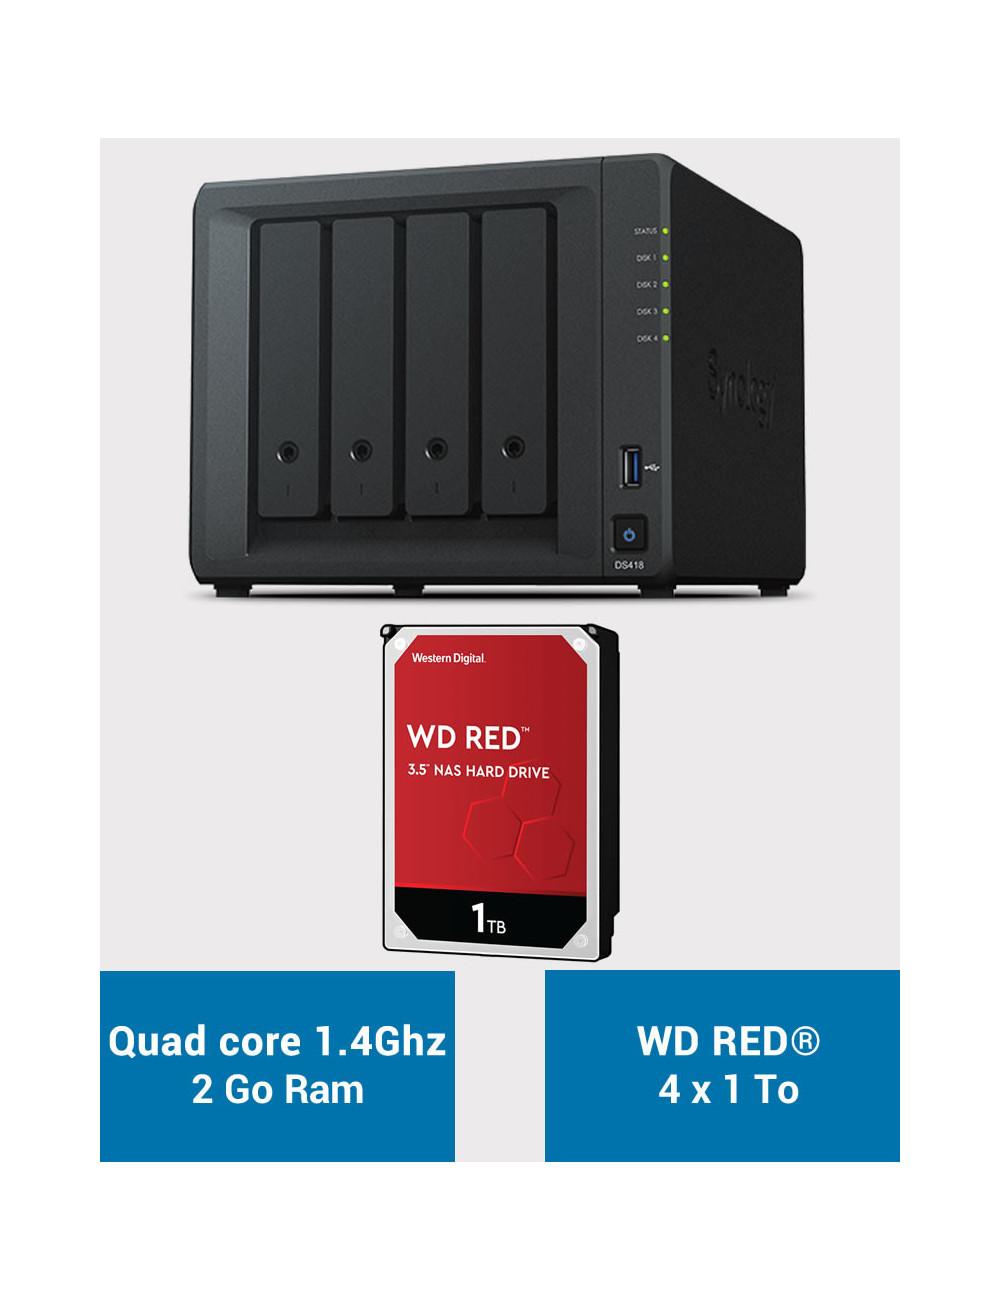 Synology DS418 NAS Server WD RED 4TB (4x1TB)